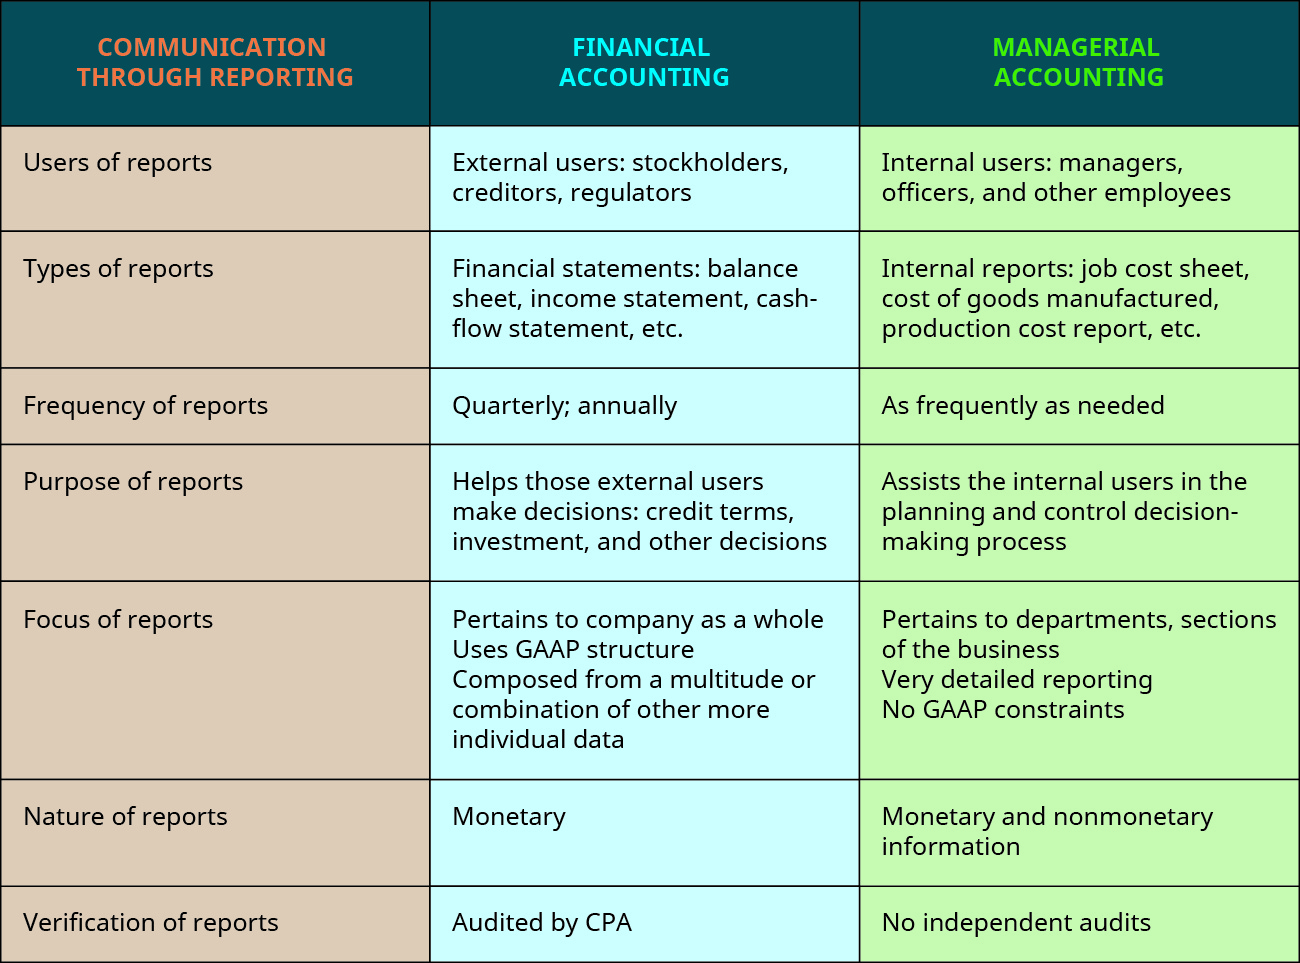 Chart with columns headed: Communication through Reporting; Financial Accounting; and Managerial Accounting (respectively): Users of reports; Primarily external users: stockholders, creditors, regulators; Internal users: mangers, officers, and other employees. Types of reports; Financial statements: balance sheet, income statement, cash-flow statement, etc.; Internal reports: job cost sheet, cost of goods manufactured, production cost report, etc. Frequency of reports; Quarterly, annually; As frequently as needed. Purpose of reports; Helps those external users make decisions: credit terms, investment, and other decisions; Assists the internal users in the planning and control decision-making process. Focus of reports; Pertains to company as a whole, Uses G A A P structure, Composed from a multitude or combination of other more individual data; Pertains to departments or sections of the business, Very detailed reporting, No G A A P constraints. Nature of reports; Monetary; Monetary and nonmonetary information. Verification of reports; Audited by C P A; No independent audits.